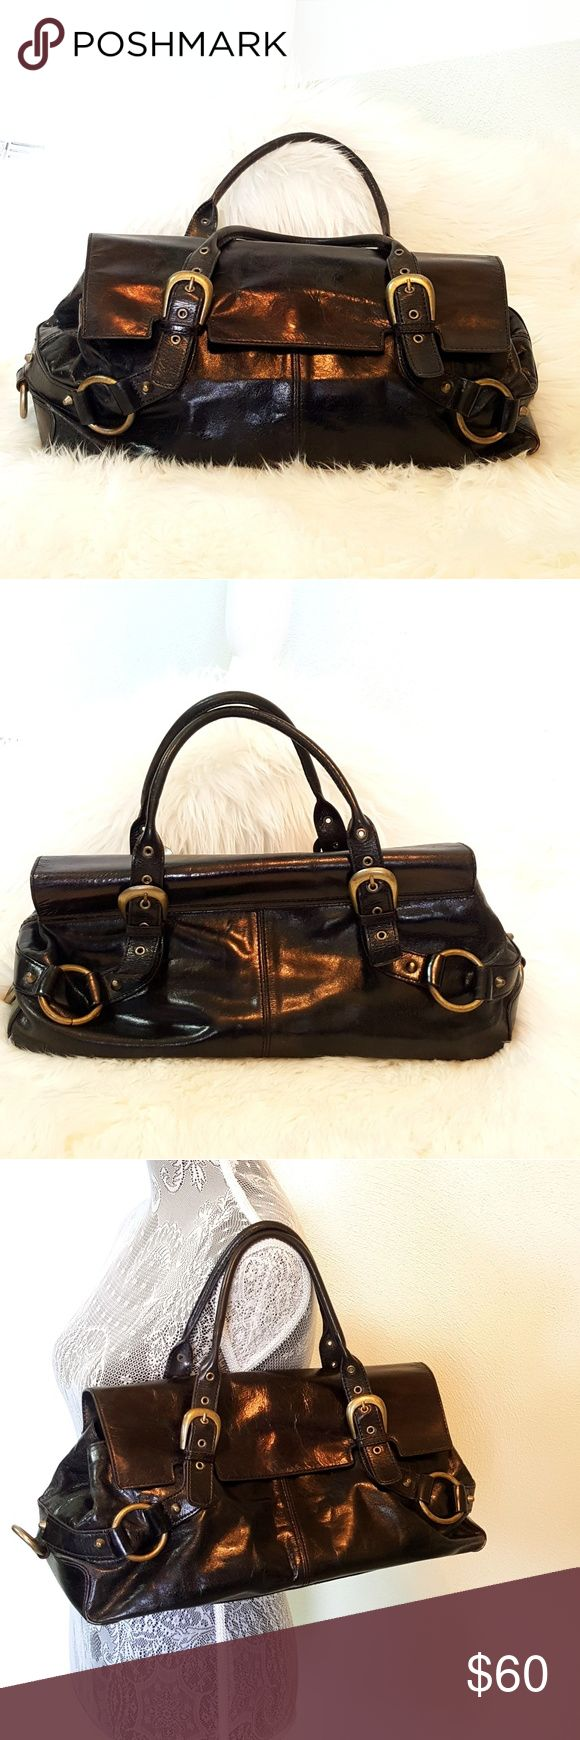 "ADRIENNE VITTADINI black leather shoulder bag ADRIENNE VITTADINI black leather shoulder bag, excellent condition  Measurements are approximate  17 x 8 x 6 5"" strap drop height Adrienne Vittadini Bags Shoulder Bags"